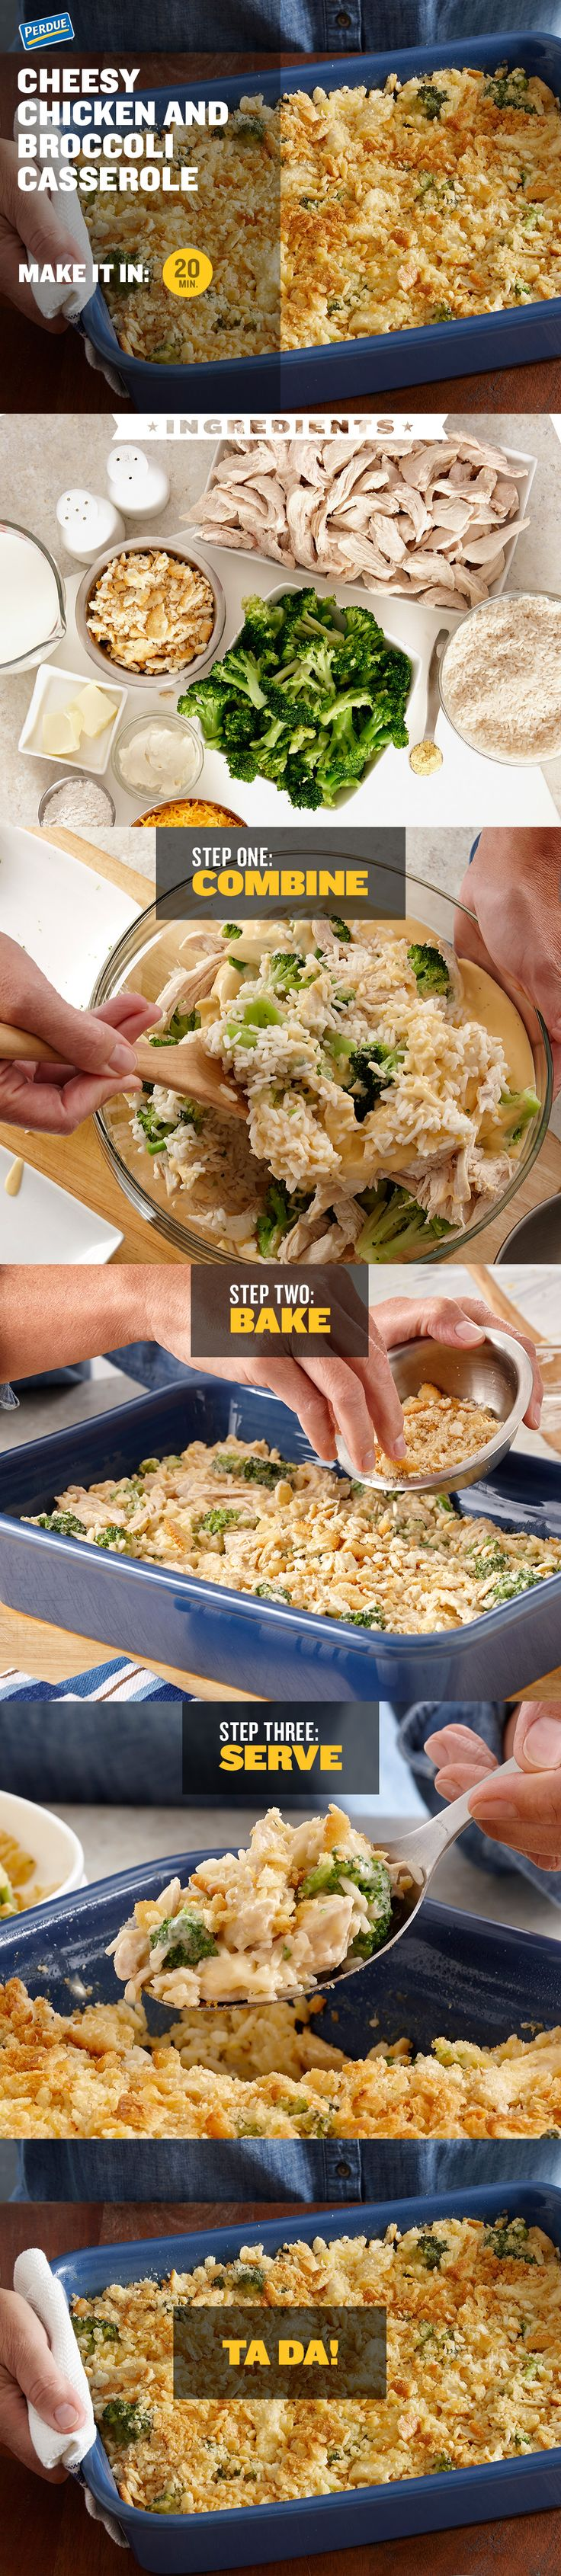 Everyone loves to warm up with a yummy casserole during the colder months. And this Cheesy Chicken & Broccoli Casserole is so tasty it'd be impossible not to go back for seconds. Yes, even the kids. If your goal is to get them to eat broccoli without complaining, this is your golden ticket. Try the recipe on a weeknight, or for a nice family meal on the weekend. Find the step-by-step instructions by clicking on the image.